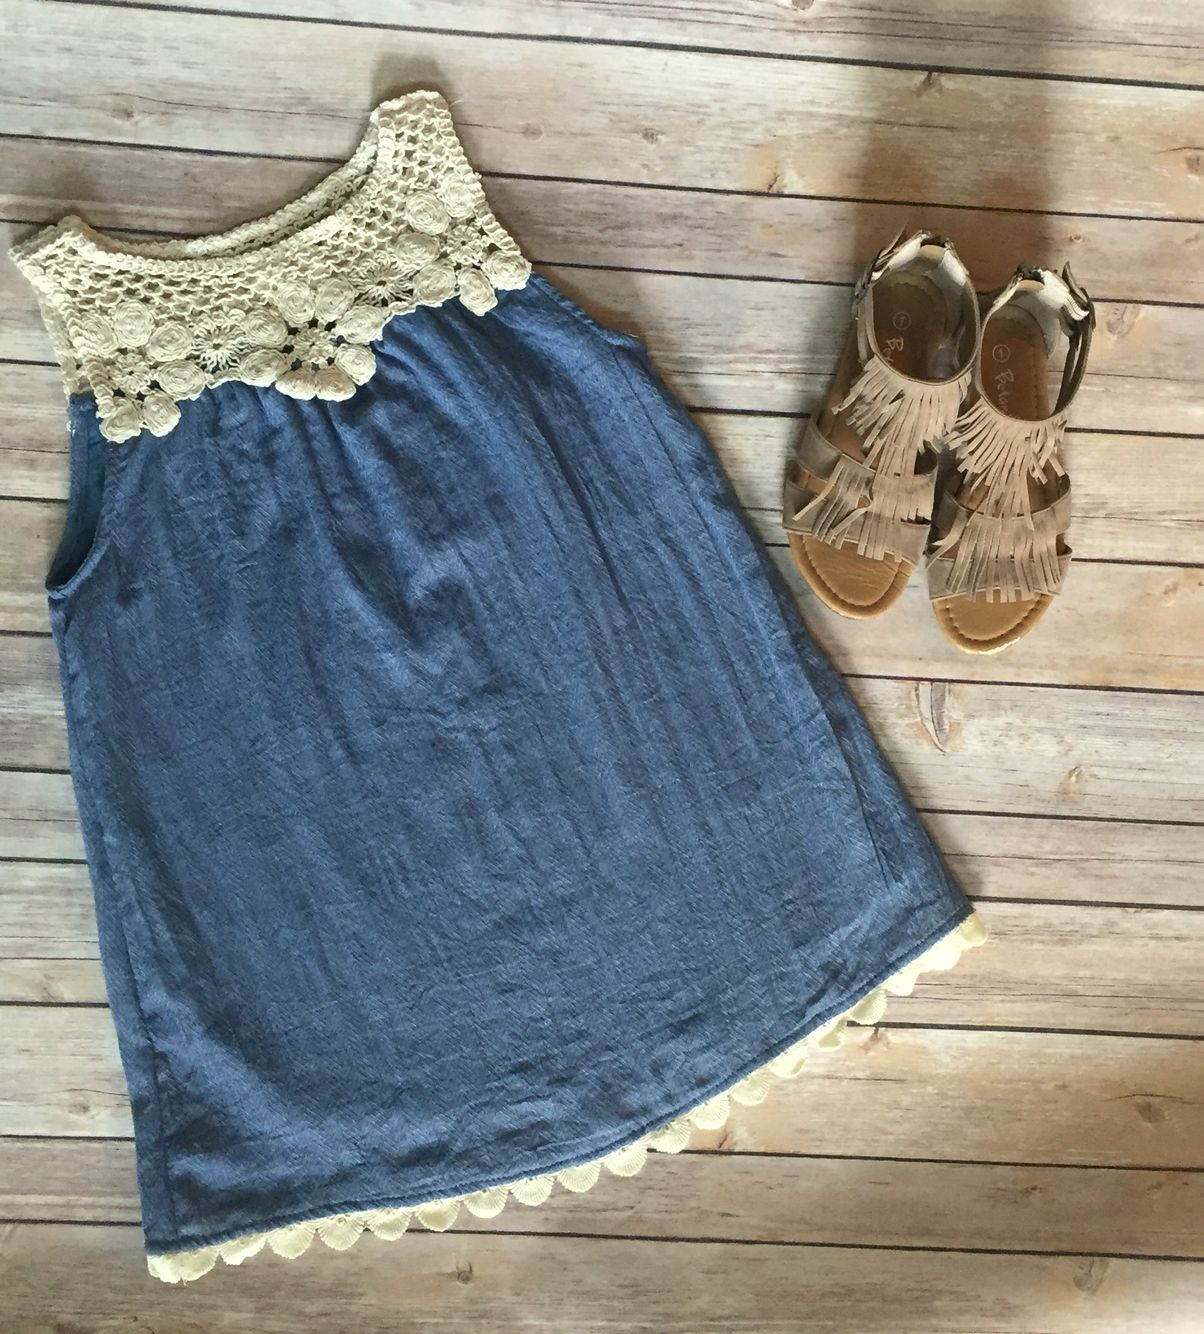 Girls denim dress and fringe sandals, such an easy & stylish outfit. You can get it today @ www.kidsclothbox.com!